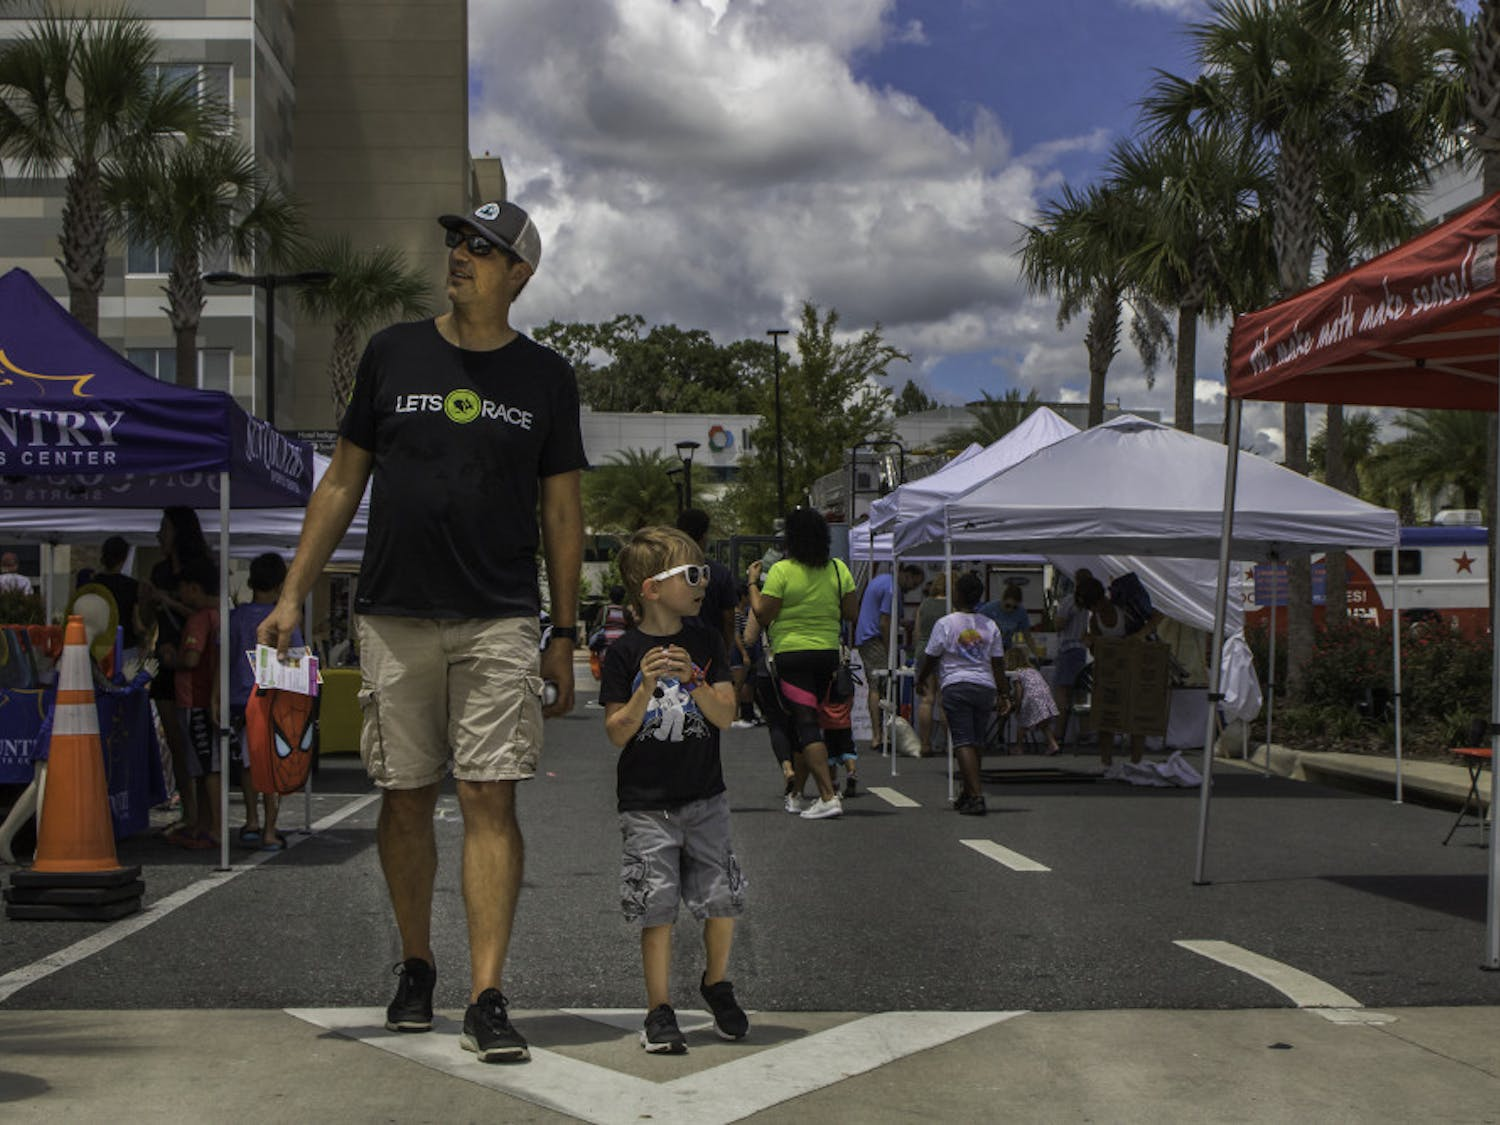 Celebration Pointe was lined with booths and vendors on Saturday as part of a Back to School Bash co-sponsored by Fun 4 Gator Kids, an organization that posts lists of local children's activities, and the shopping center. The event was created to give children an afternoon of fun activities and a chance to interact with local businesses before Alachua County Schools begin classes on Aug. 12. The event featured fencing and archery demonstrations, charity drives, food and refreshments from vendors and a bounce house.